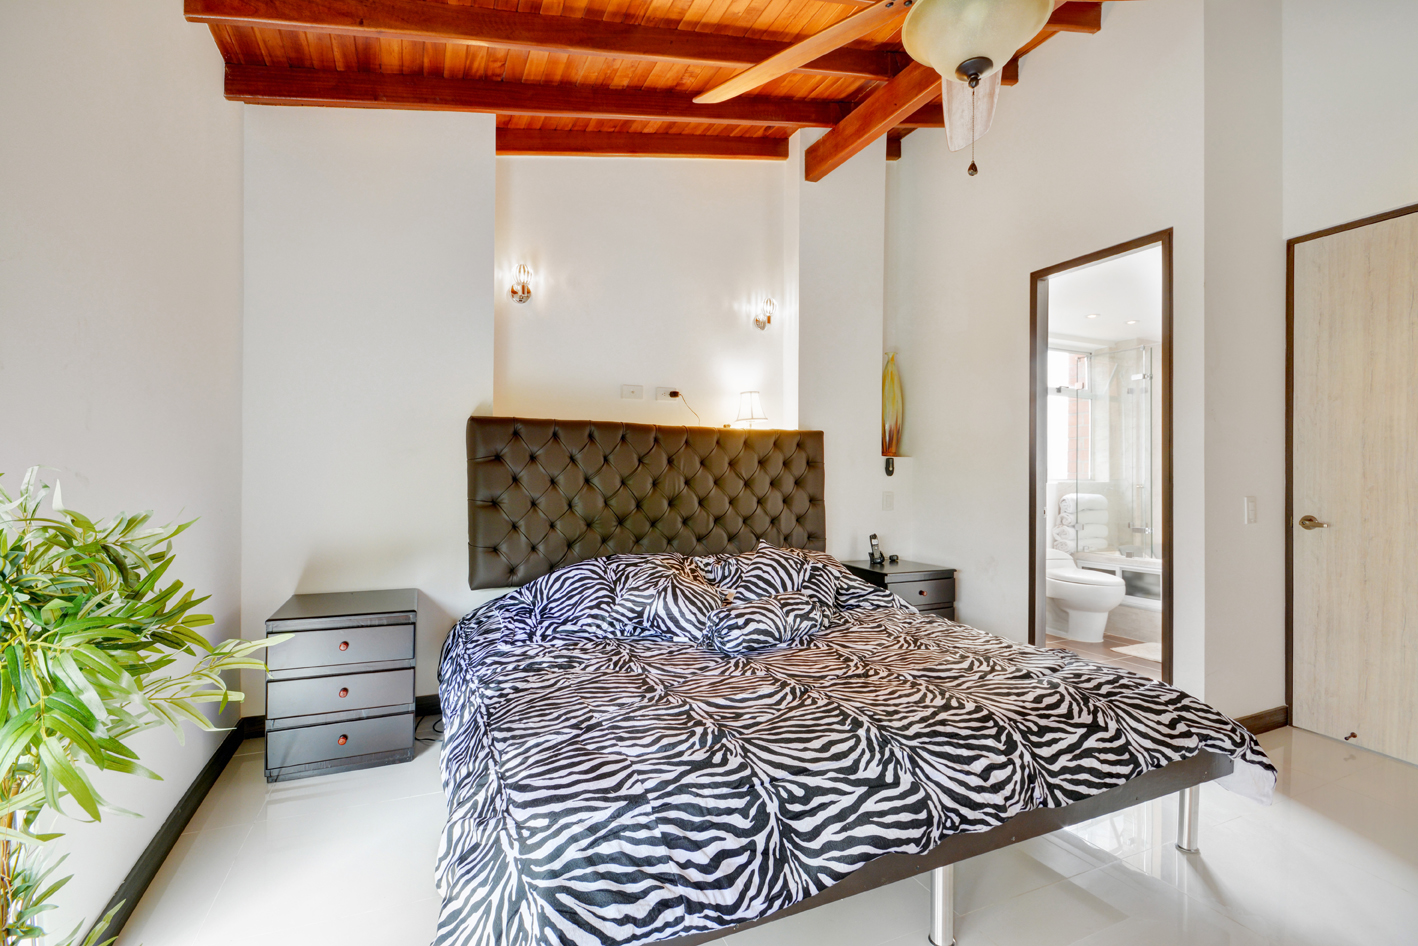 Bedroom 2 with ensuite bathroom in luxury Astorga Duplex for rent